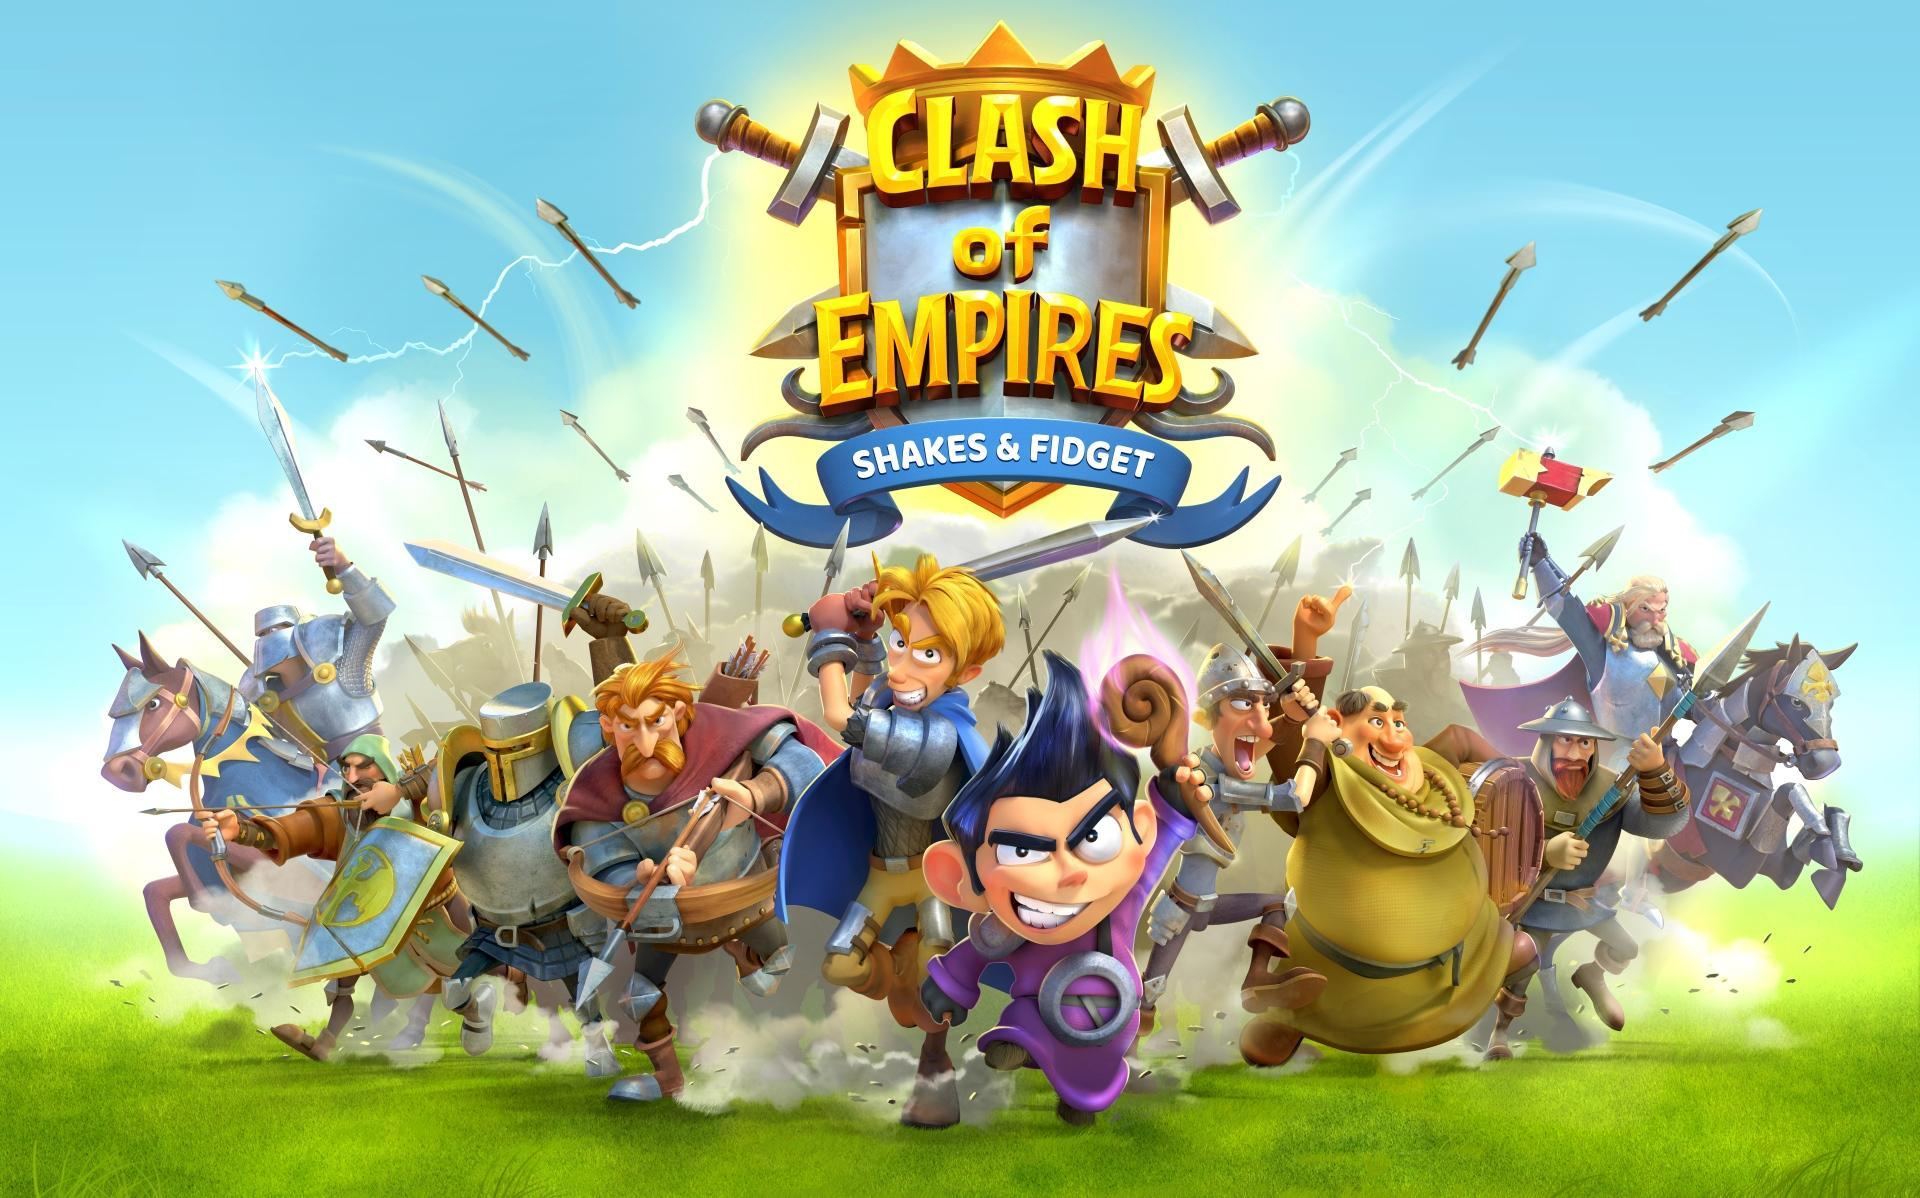 clash of empires shakes and fidget